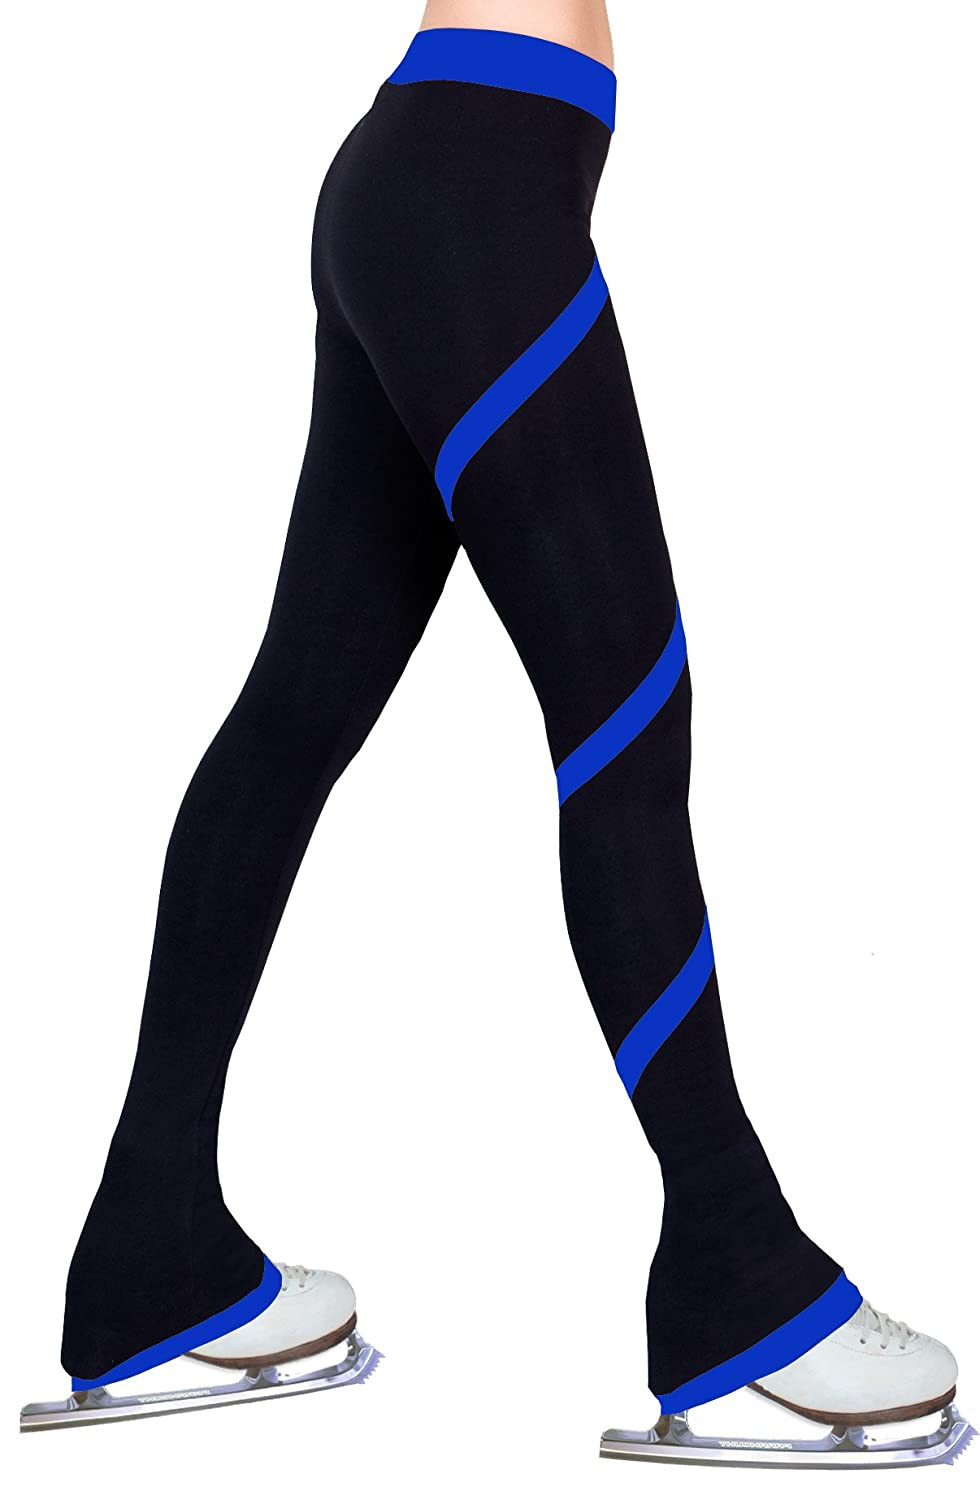 Figure Skating Spiral Polartec Polar Fleece Pants - Royal Blue NY2 SPORTSWEAR